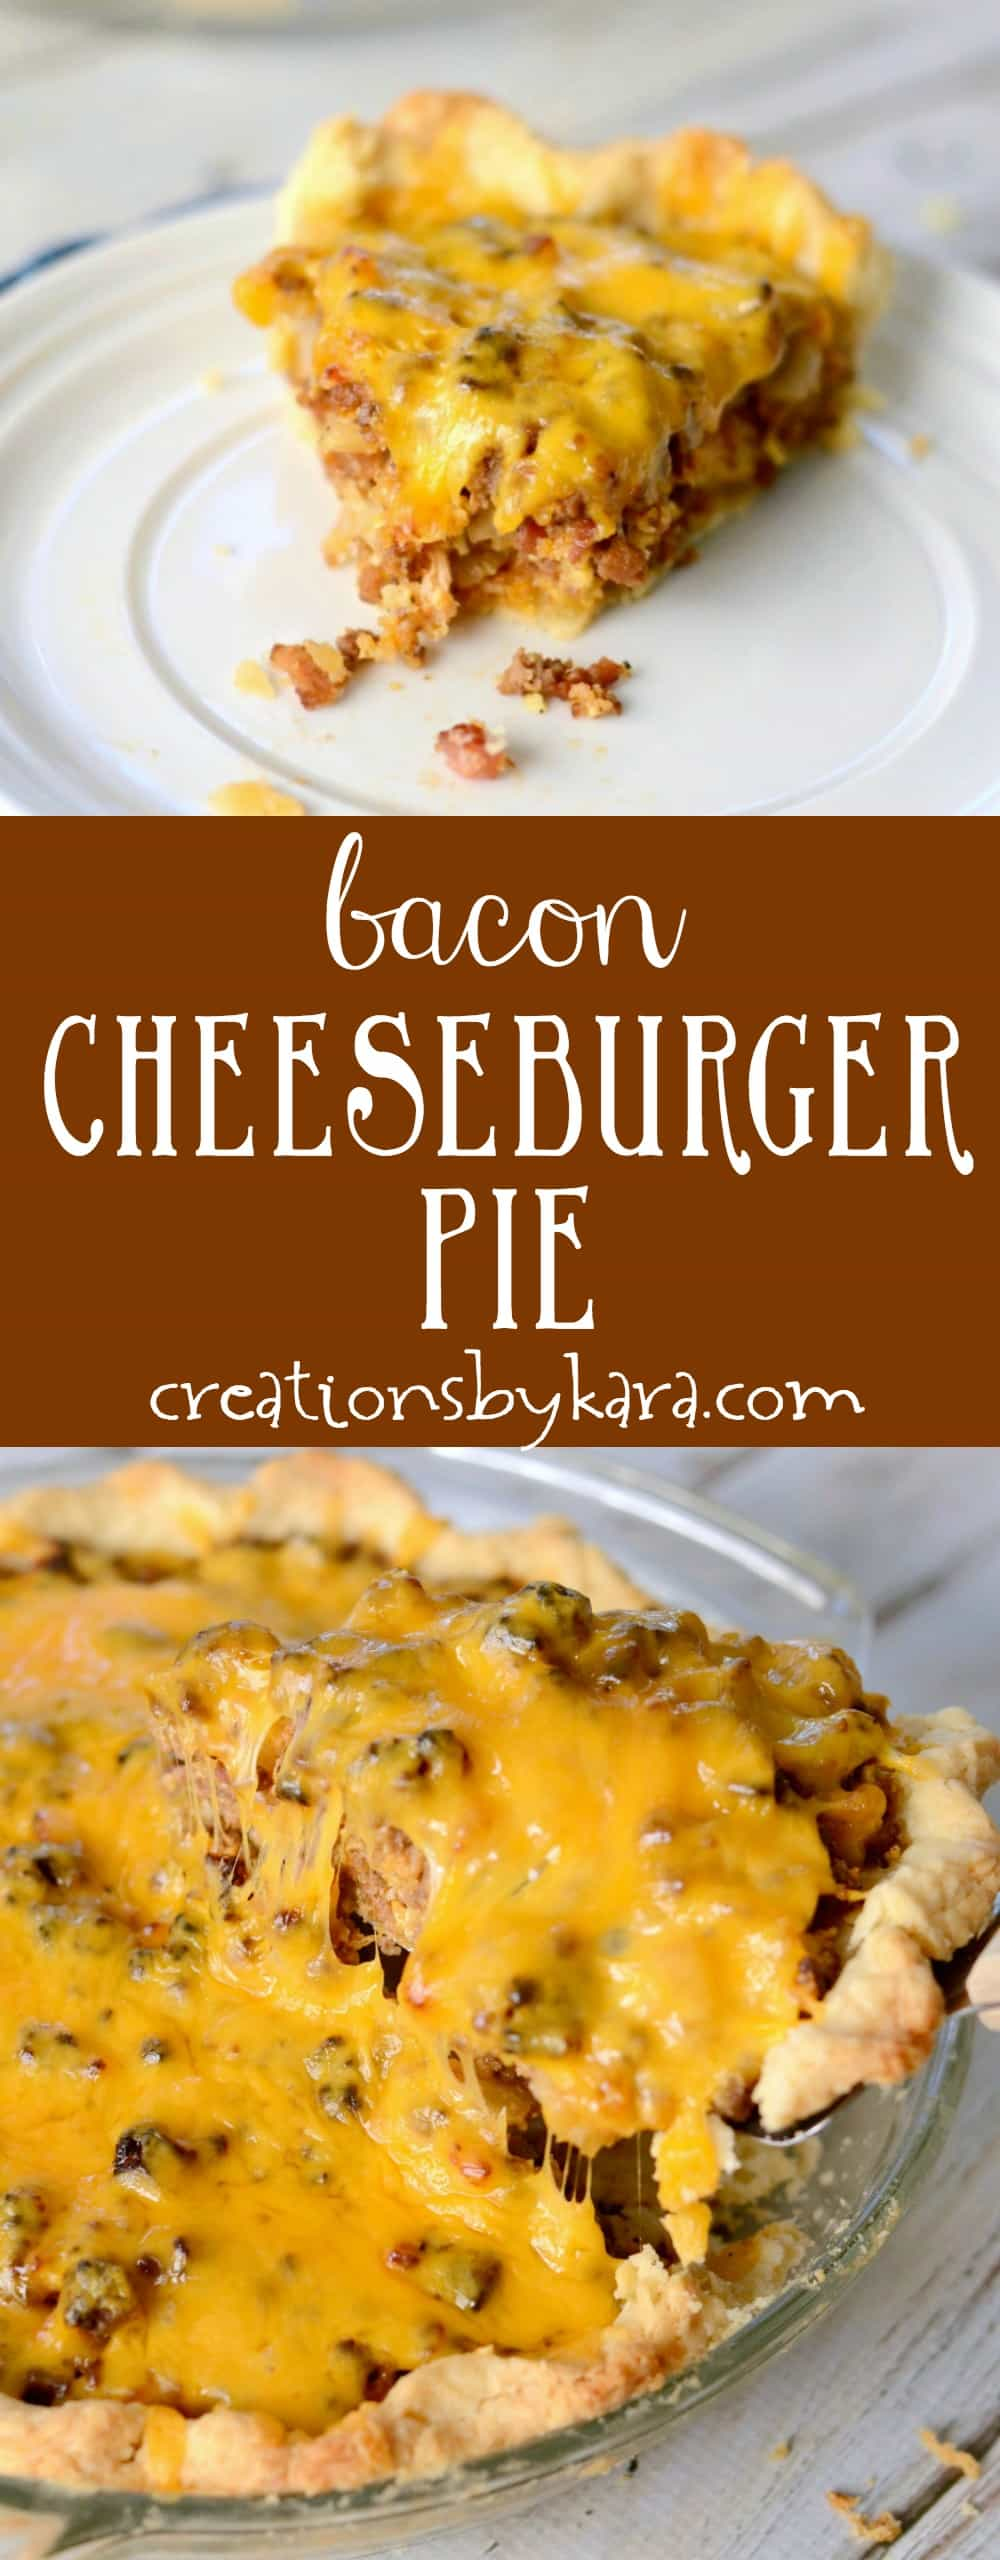 Bacon Cheeseburger Pie - a hearty meat pie filled with beef and bacon, topped with melted cheese. A perfect family dinner recipe!